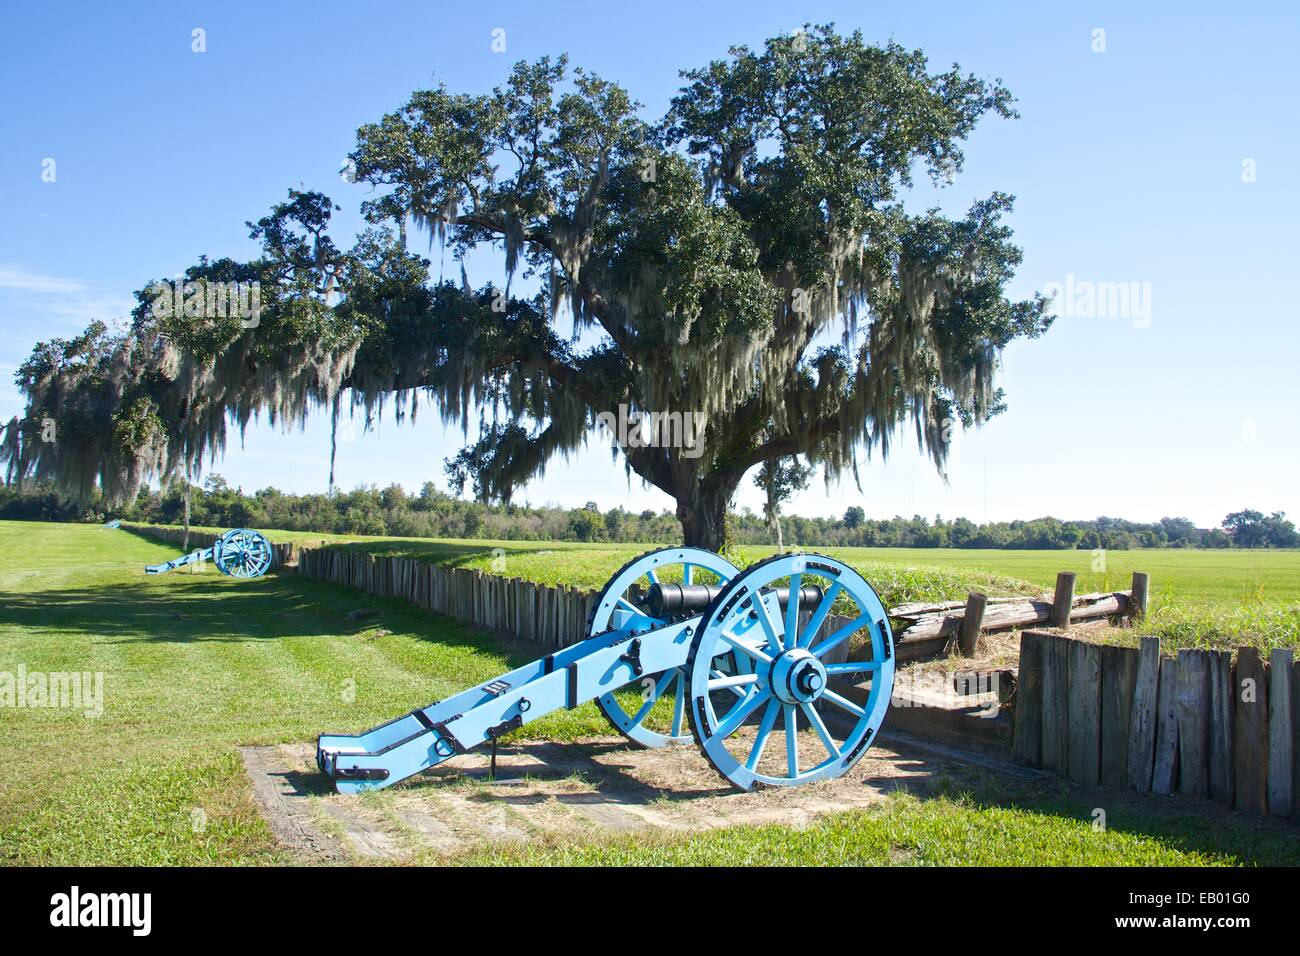 Chalmette National Battlefield, Site of the Battle of New Orleans, 1815. -  Stock